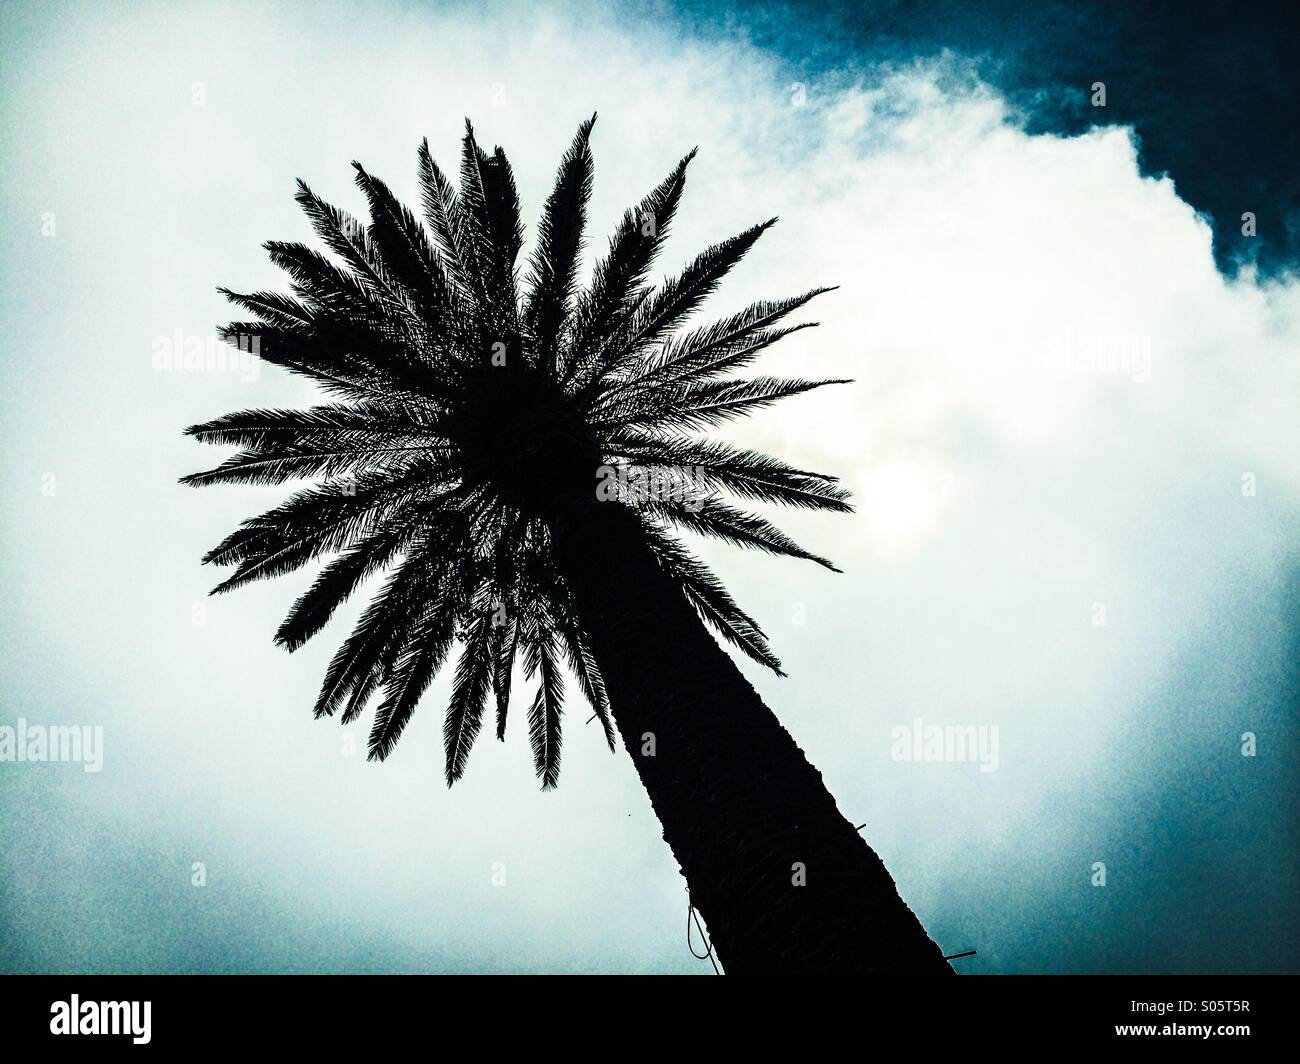 Palm tree silhouette from bellow - Stock Image